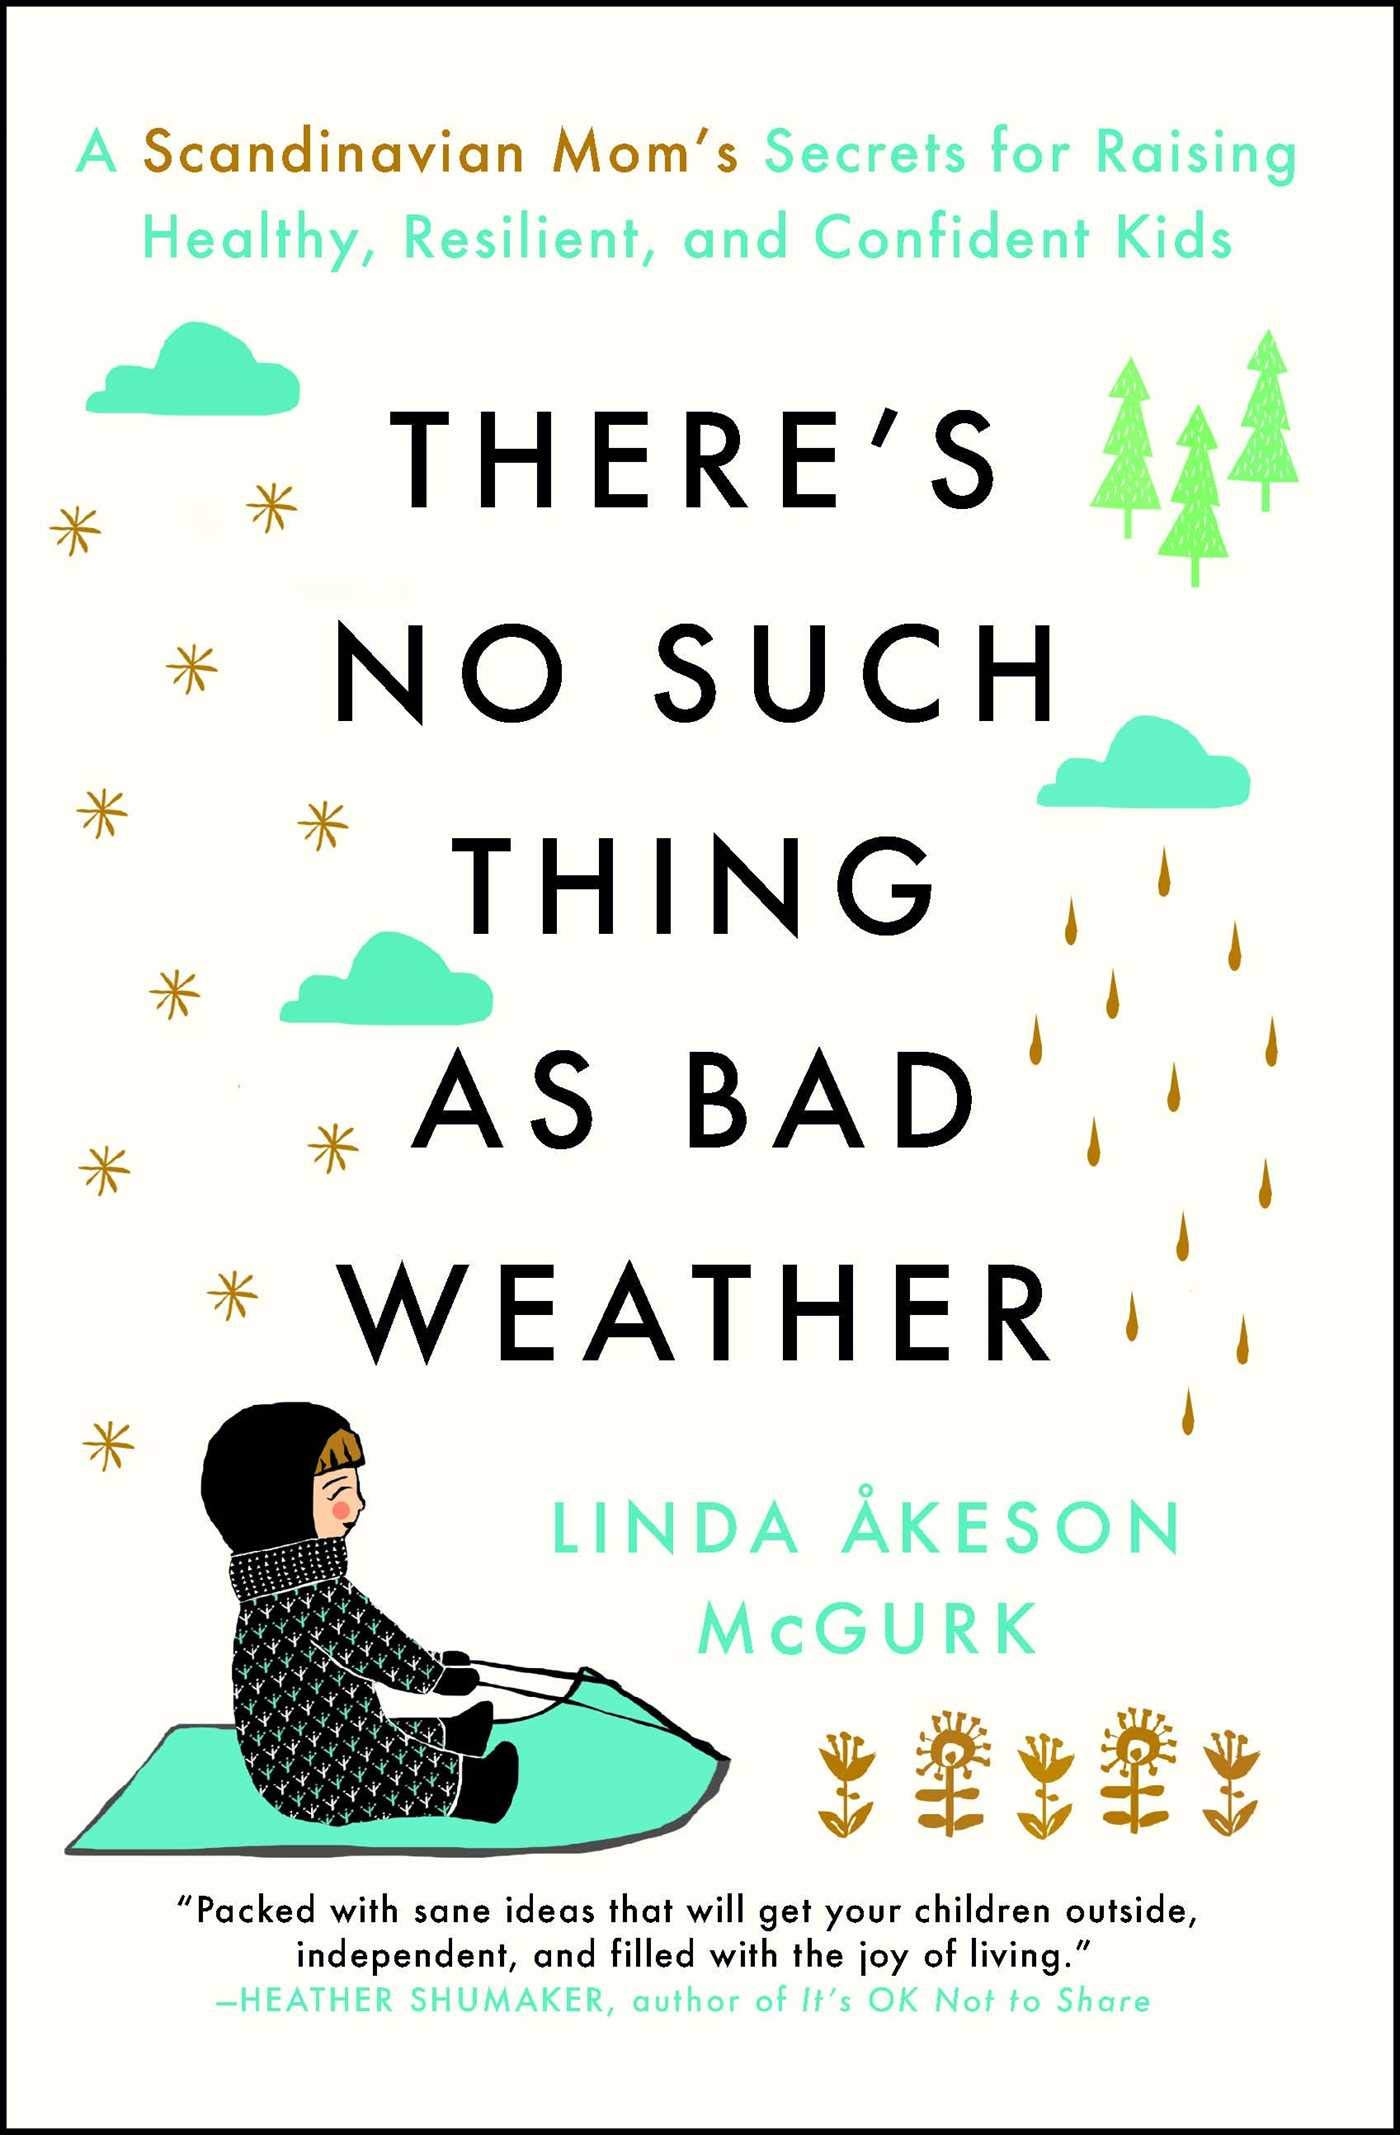 Theres No Such Thing as Bad Weather: A Scandinavian Moms Secrets for Raising Healthy, Resilient, and Confident Kids from Friluftsliv to Hygge: Amazon.es: ...